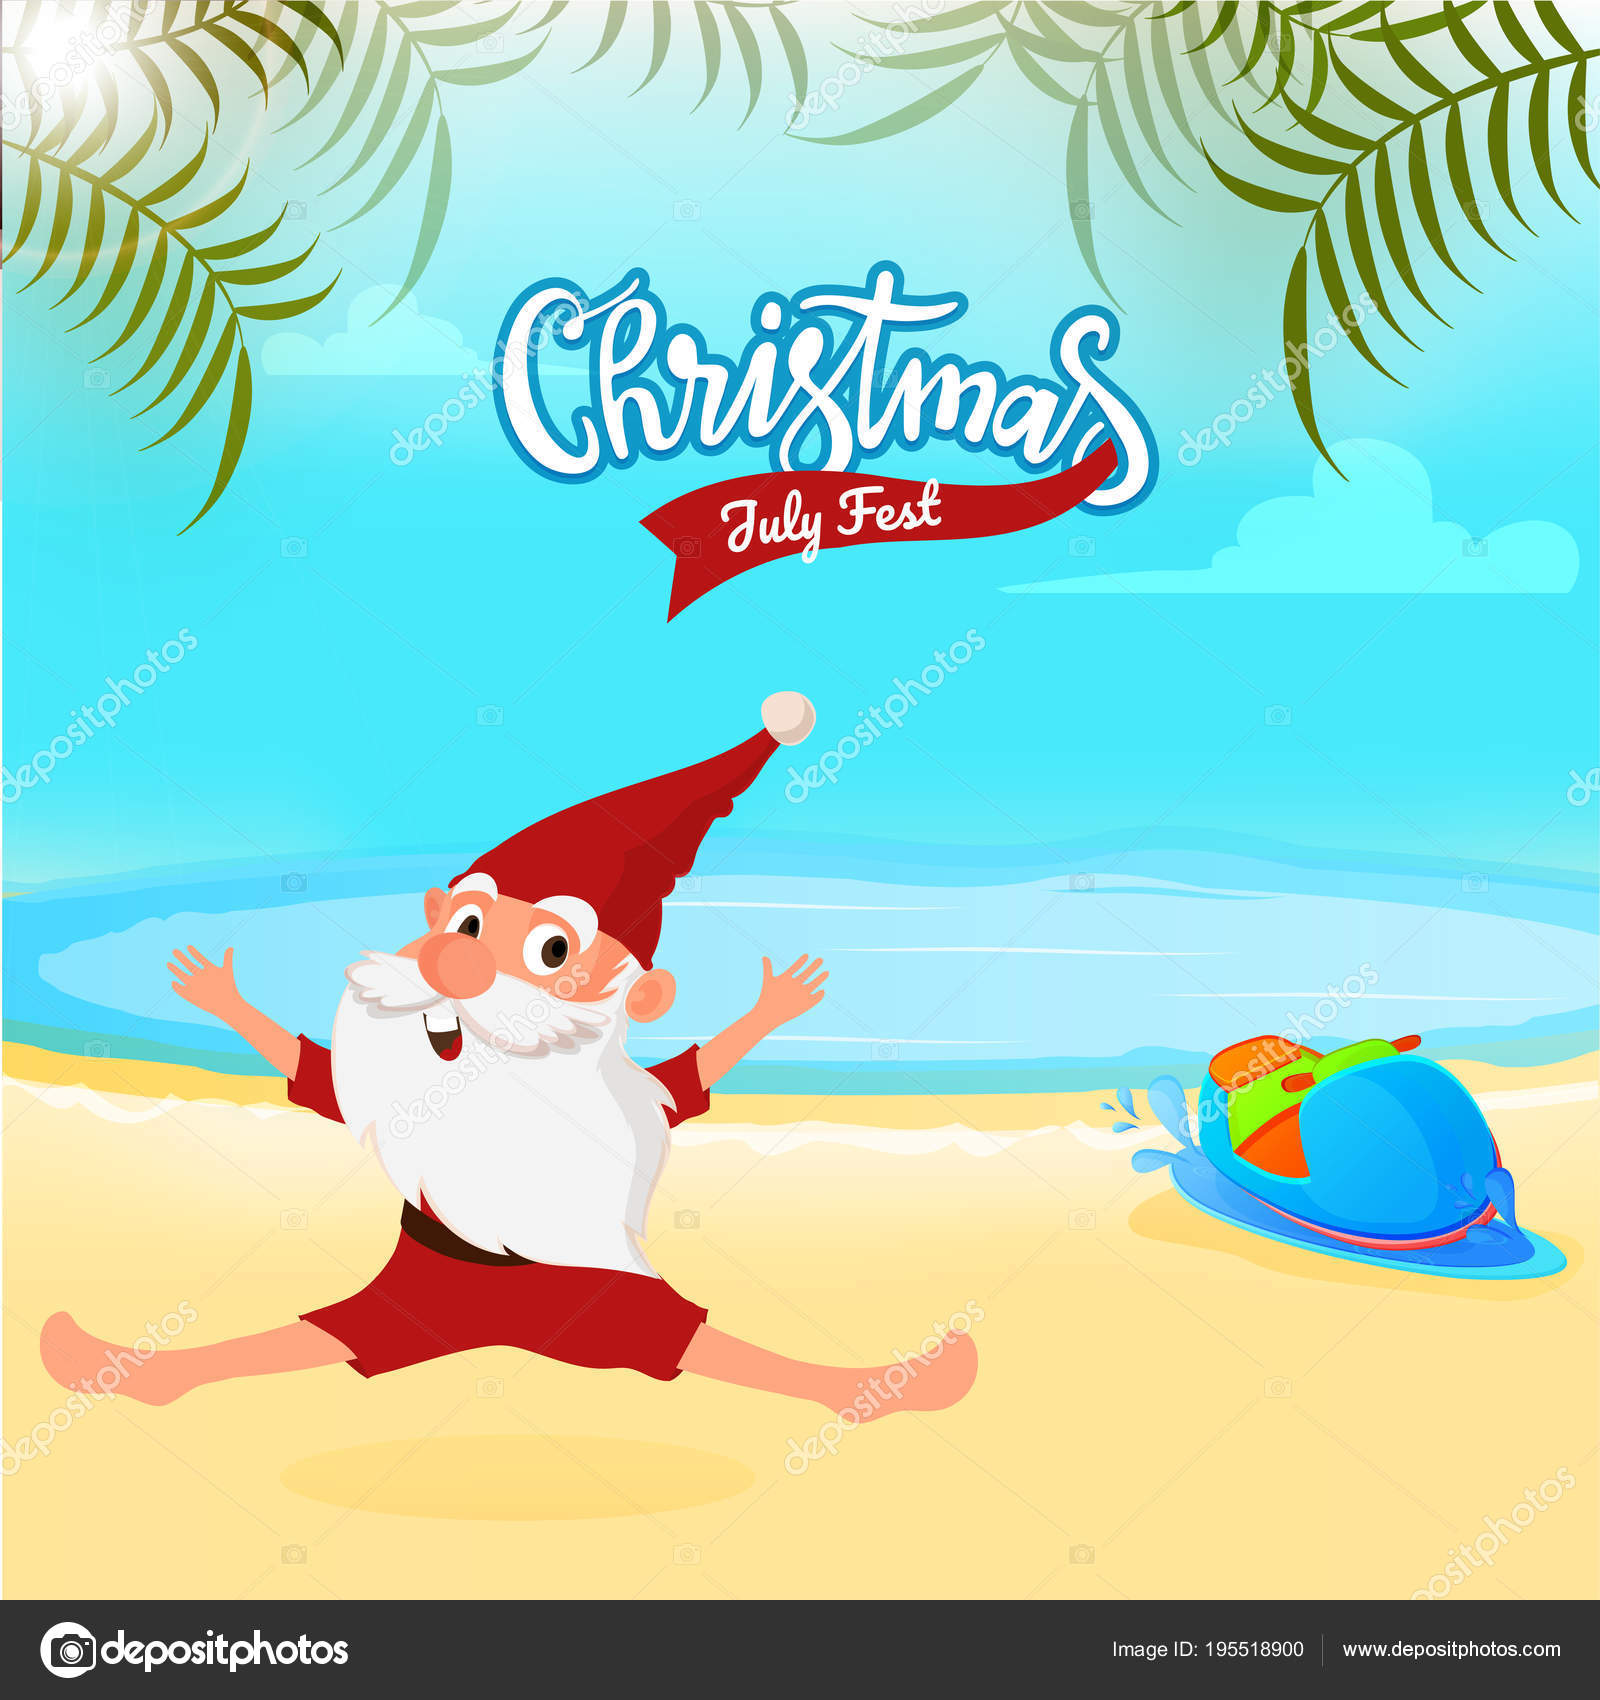 Christmas In July Background Images.Christmas In July Fest Sale Banner Poster Or Flyer Design